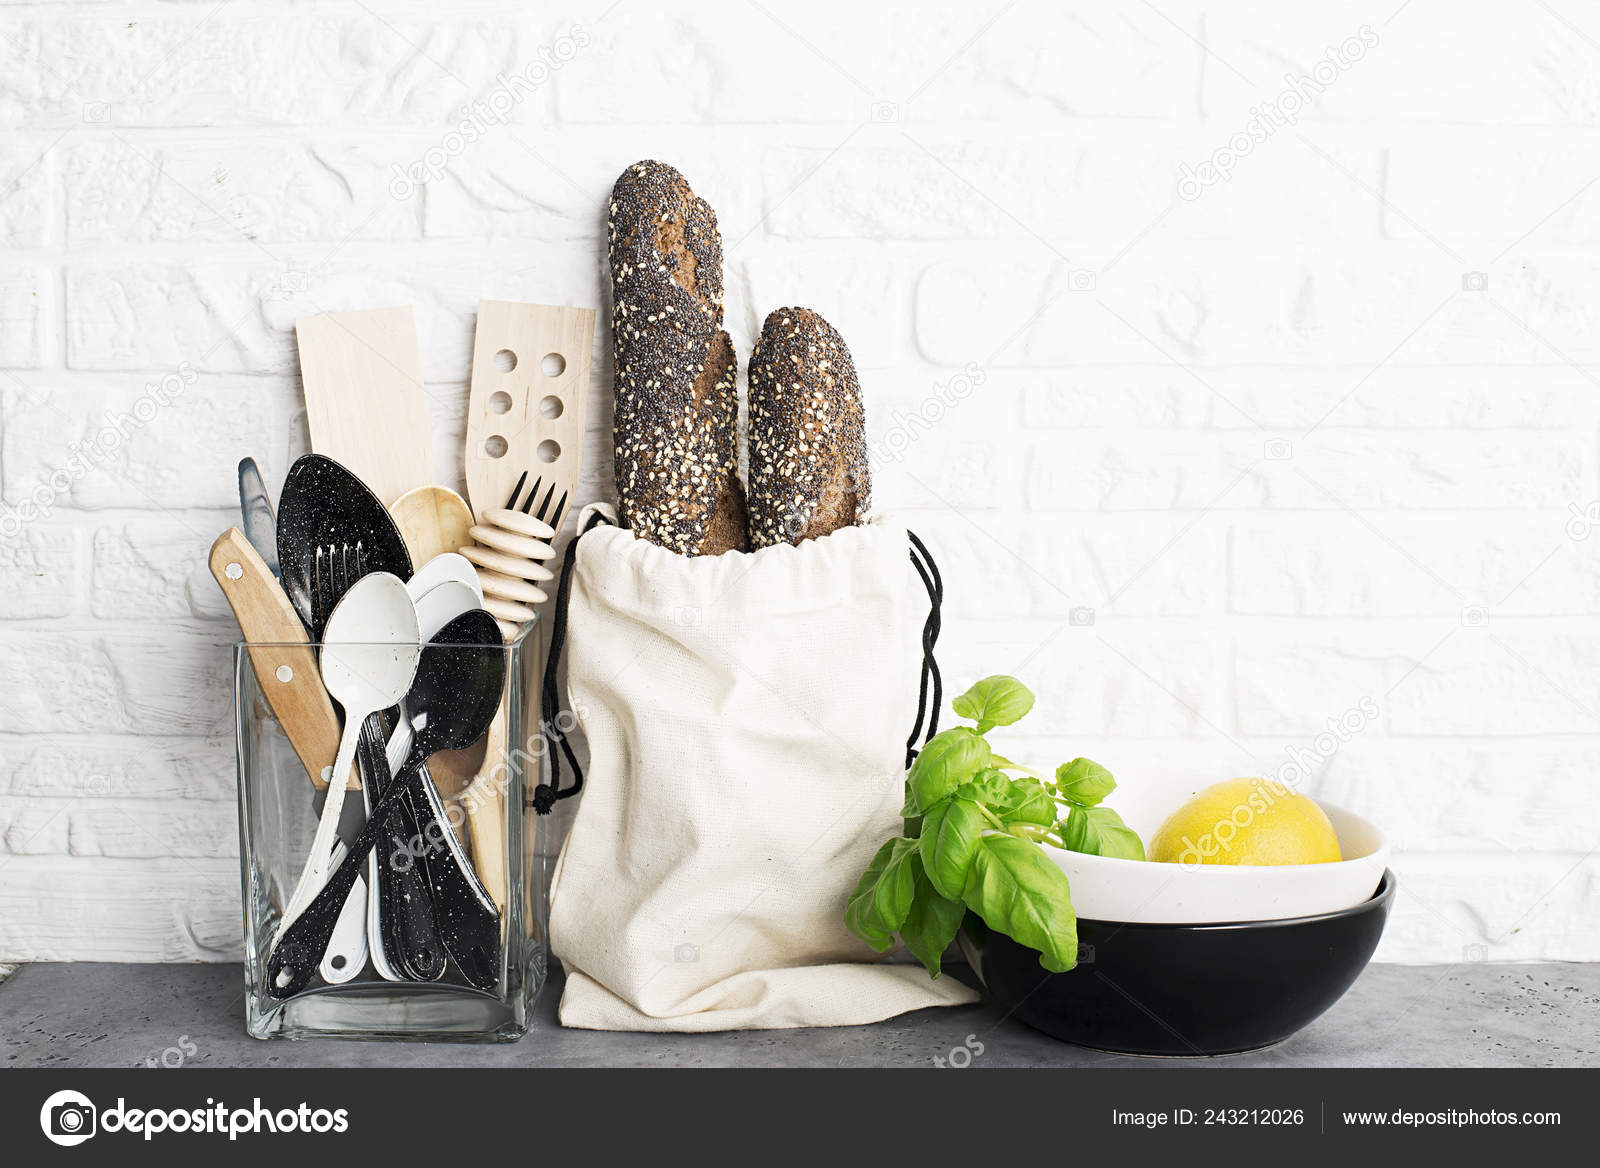 Kitchen Tools Olive Cutting Board Kitchen Shelf White Brick Wall Stock Photo C Ileishanna 243212026